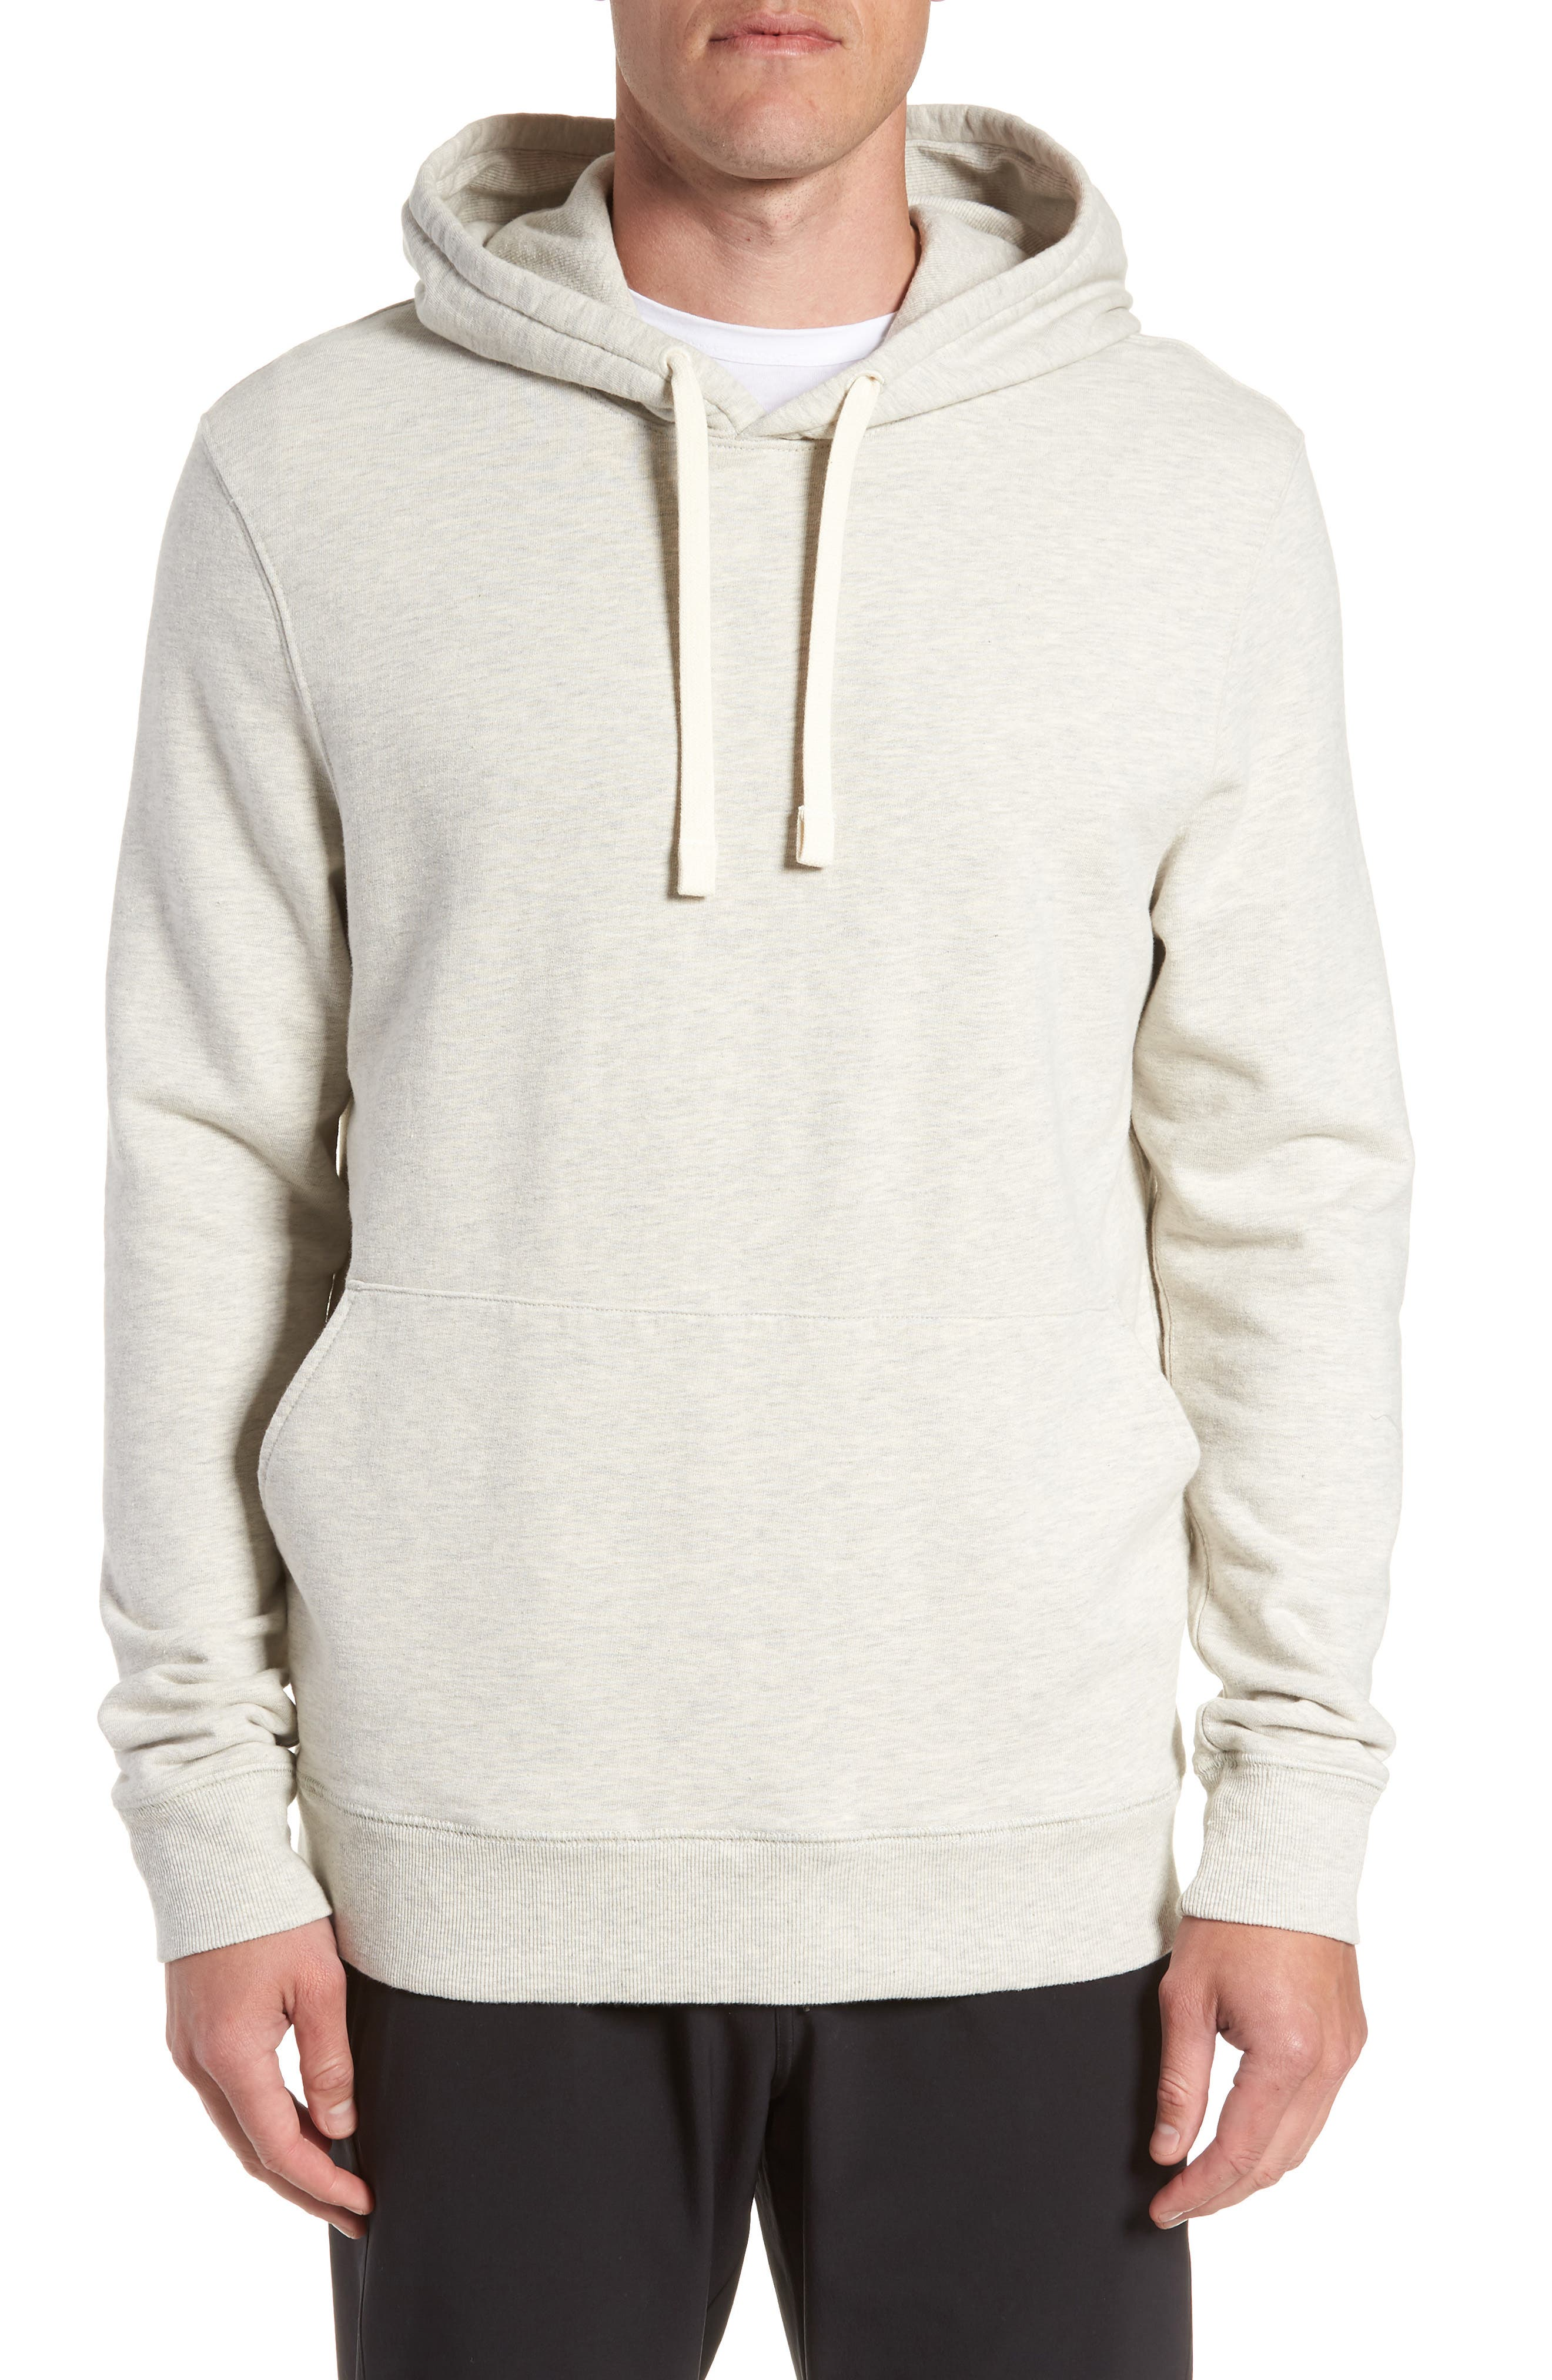 RICHER POORER Hoodie, Main, color, OATMEAL